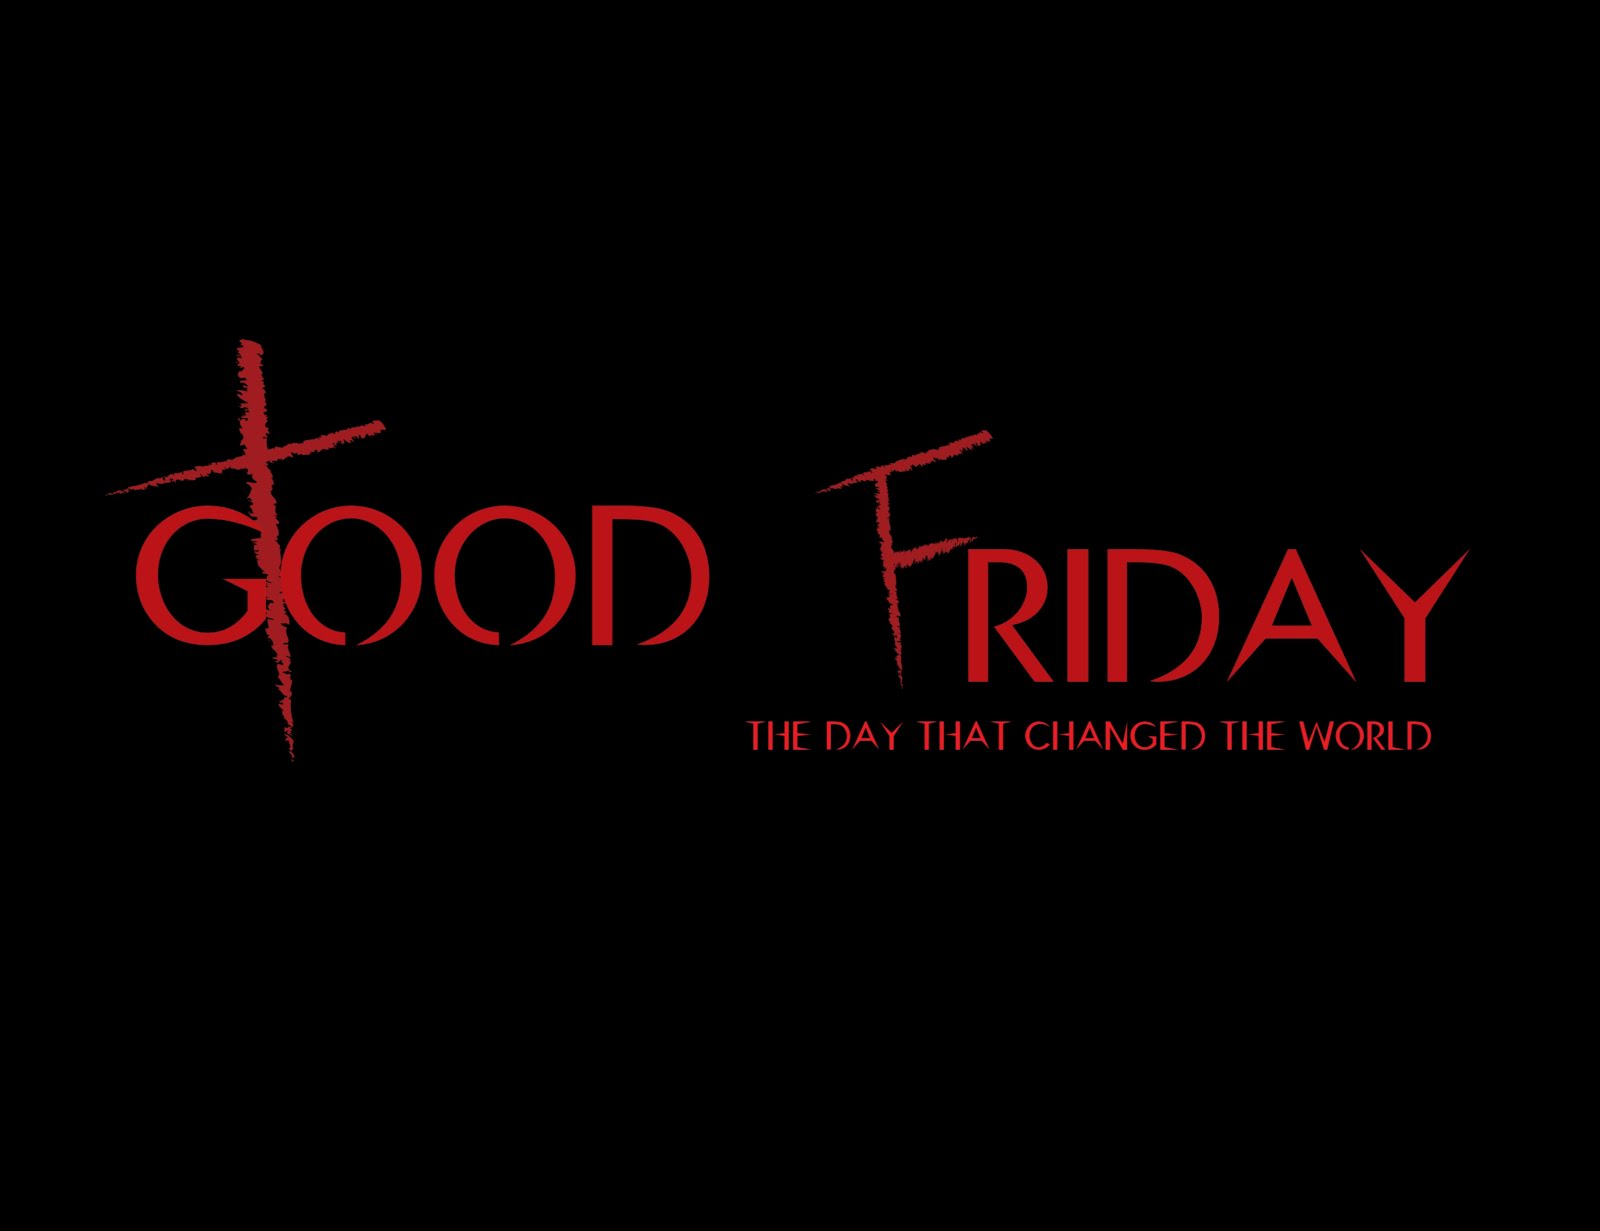 Good Friday Wallpapers Free Christian Wallpapers